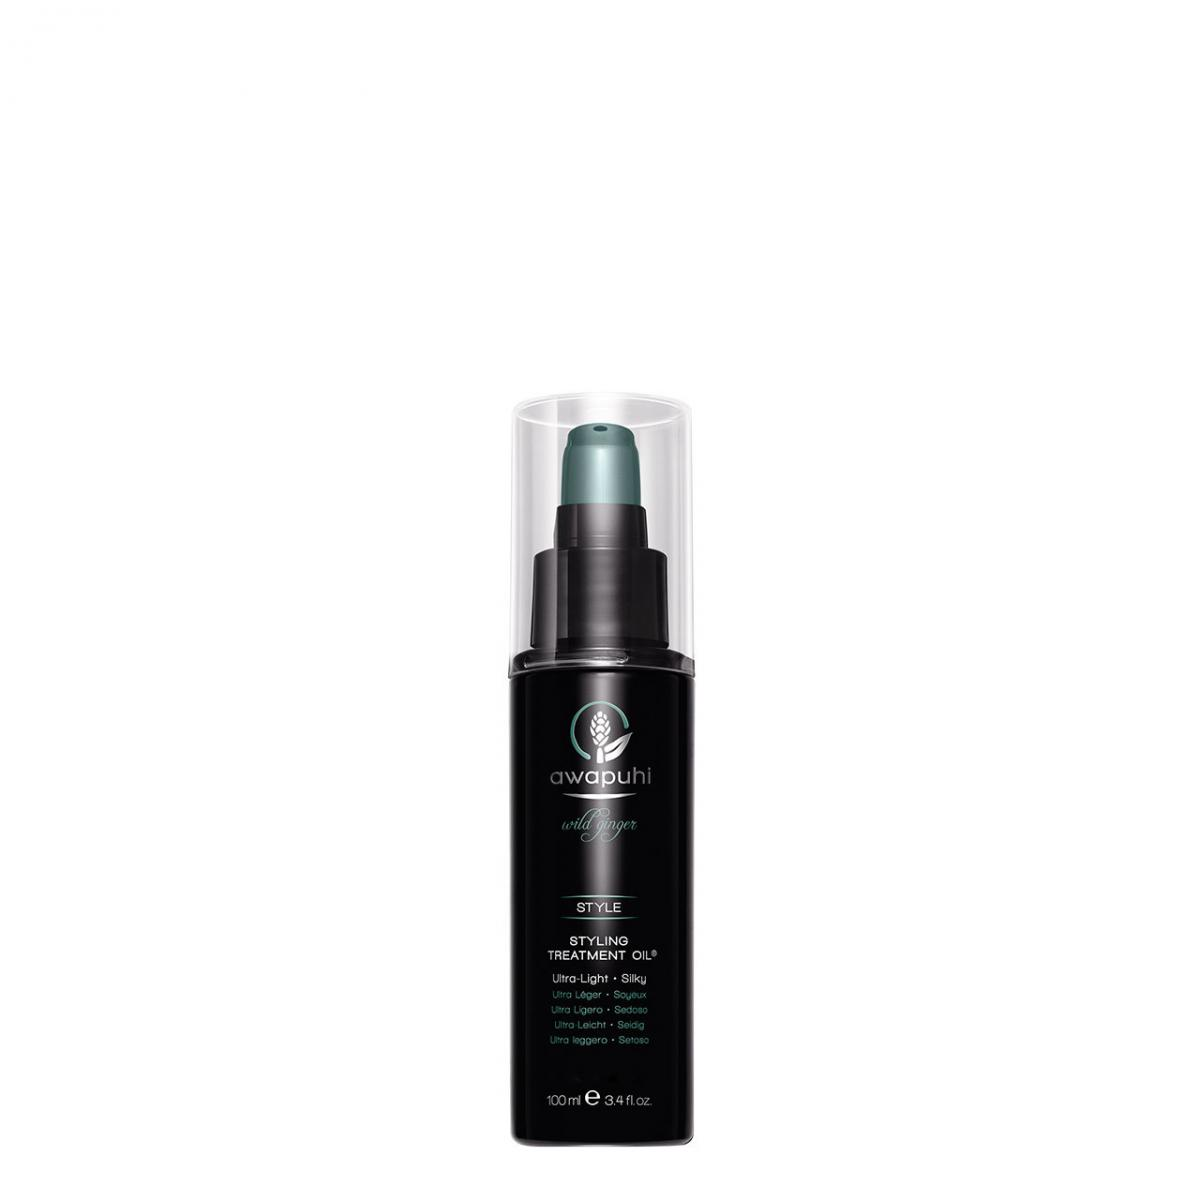 Awapuhi Wild Ginger Styling Treatment Oil® 100 ml - Hairsale.se